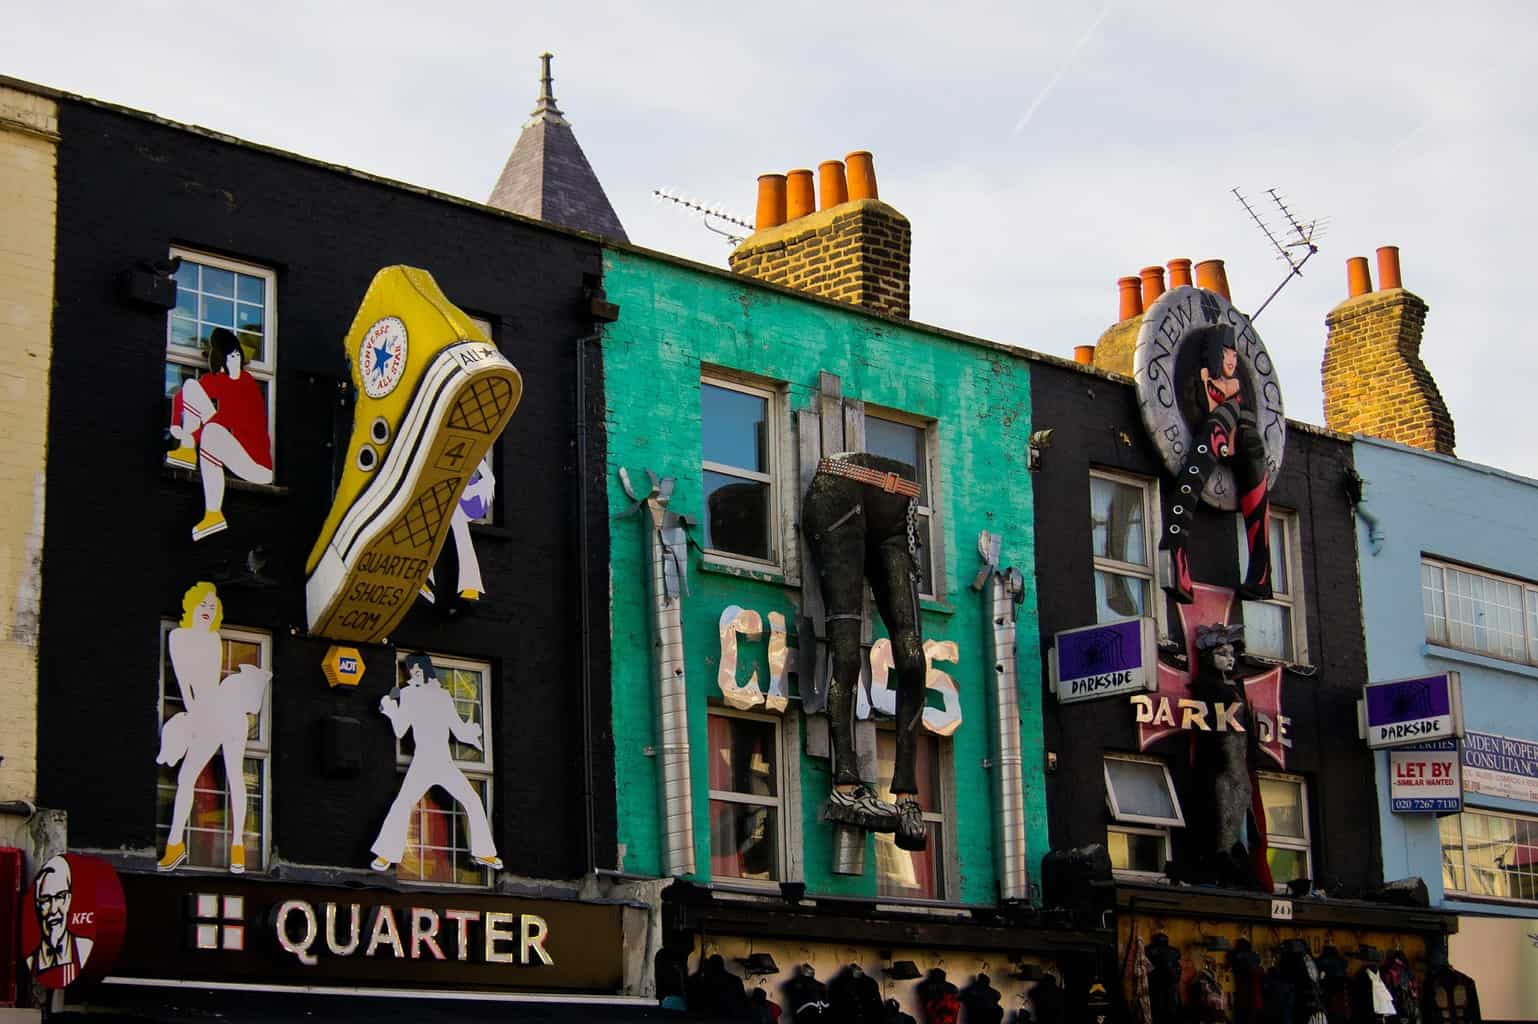 Colorful buildings with large clothing replica statues hanging off exterior walls in Camden London